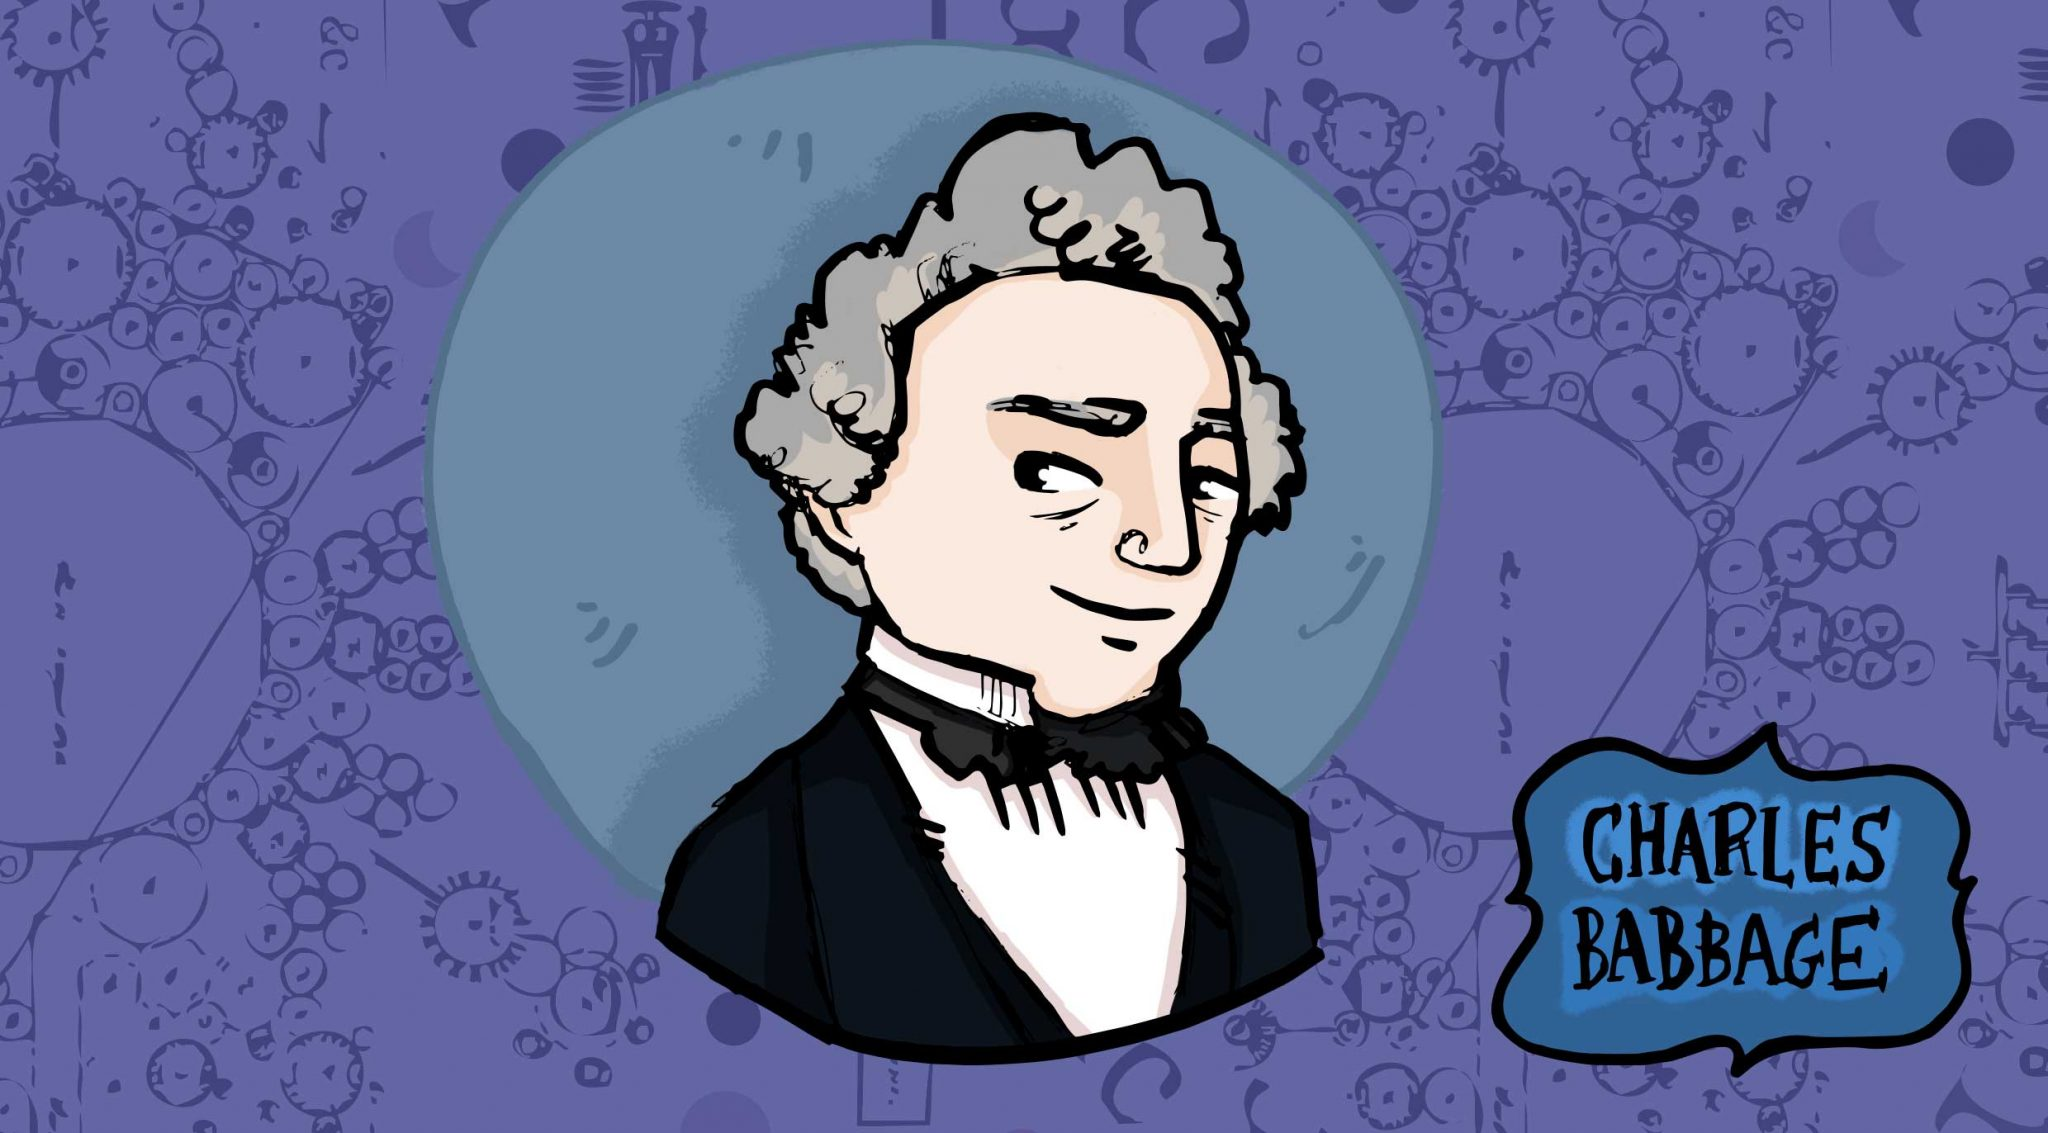 Charles-Babbage-illustration